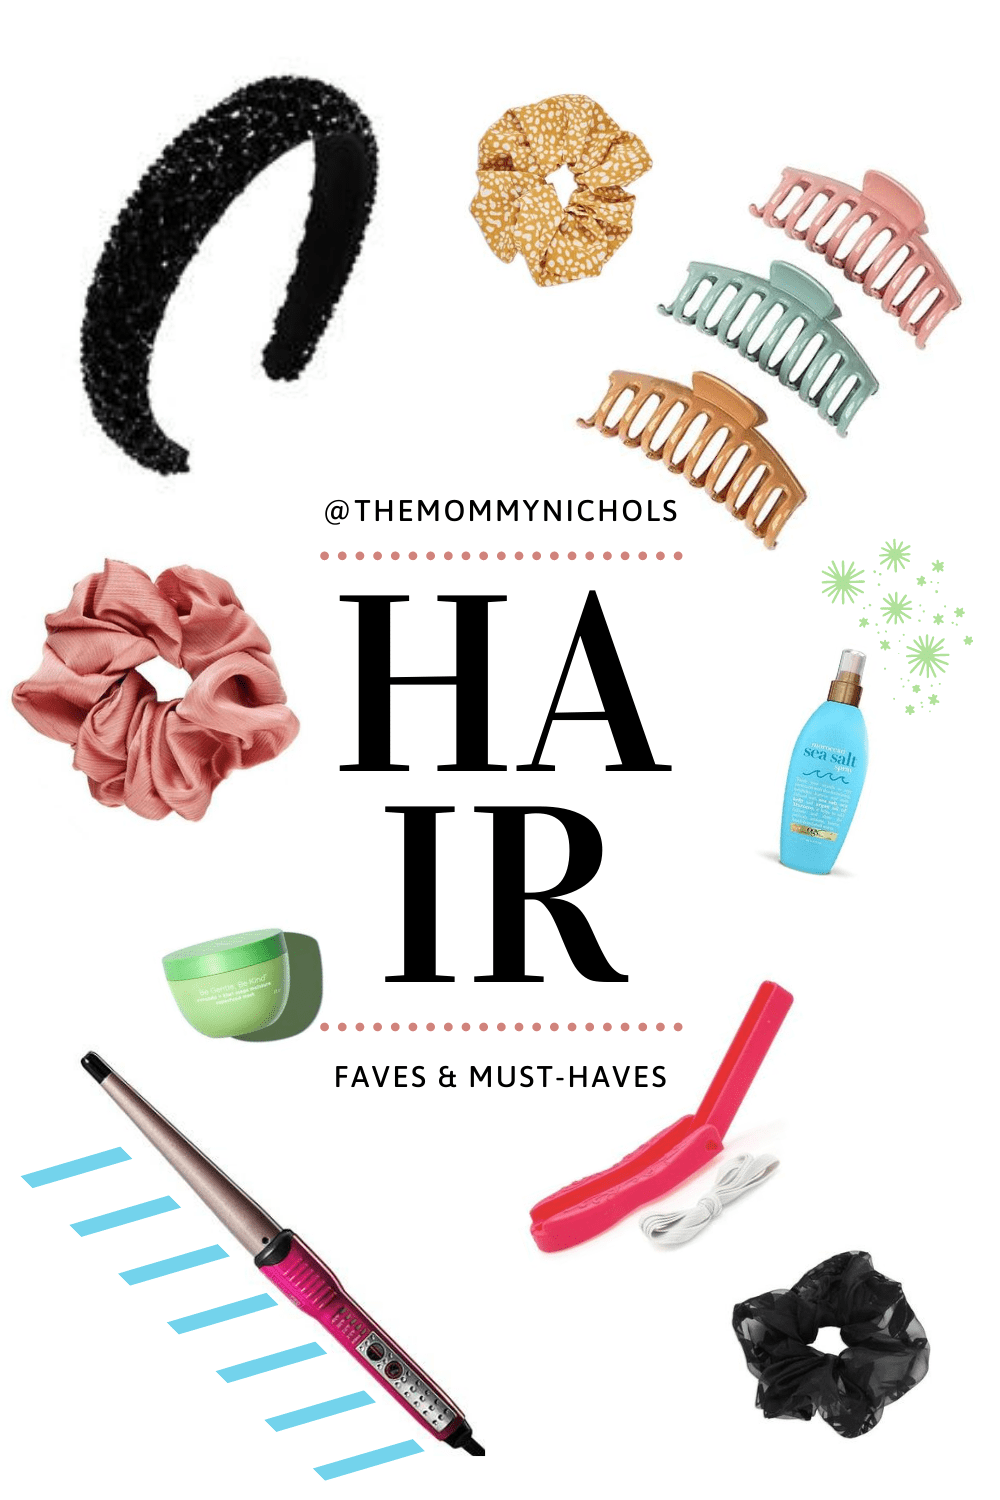 Favorite Hair Accessories & Must-Haves